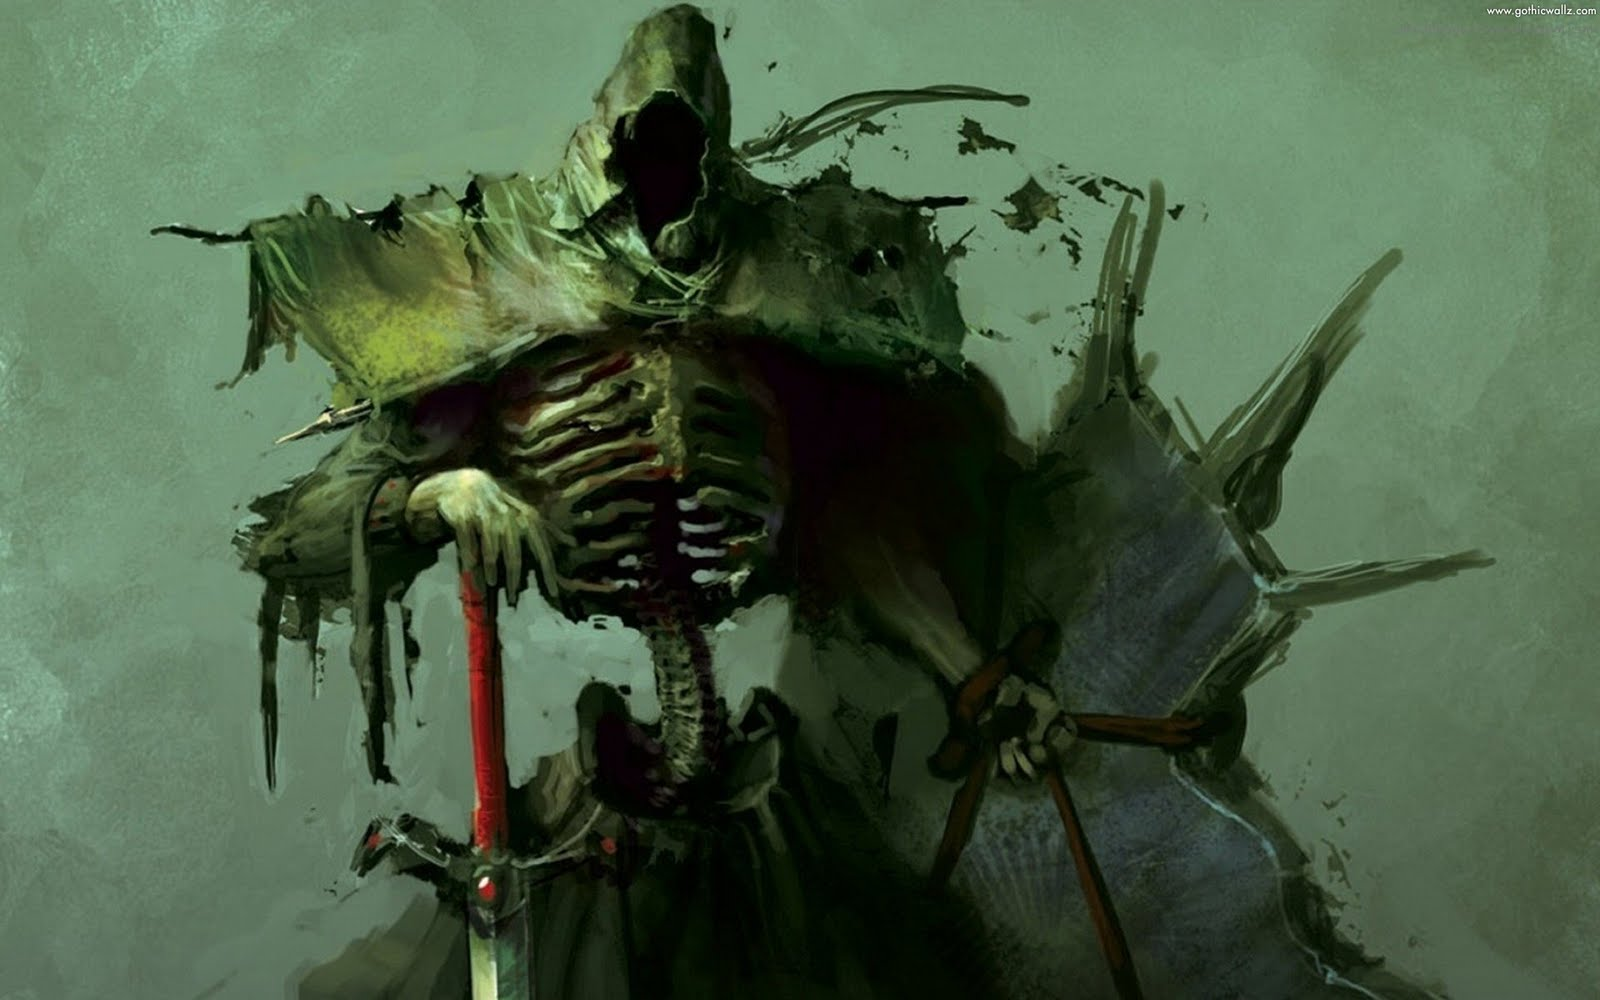 Horror Skeleton | Gothic Wallpaper Download